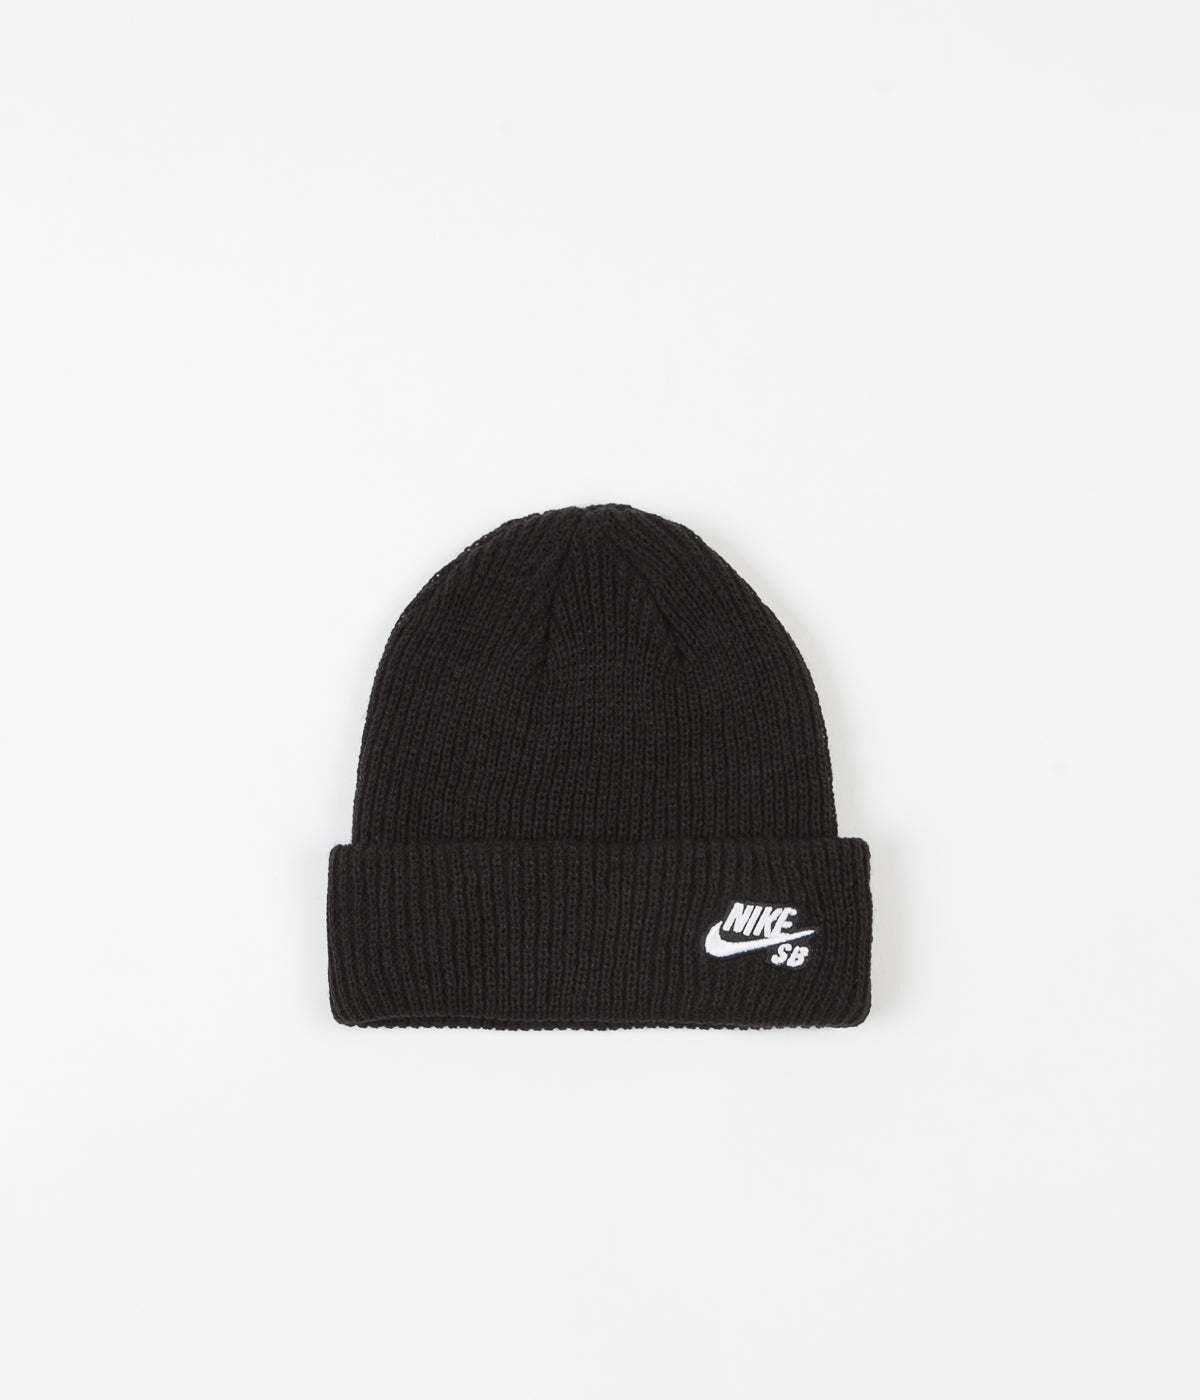 factory authentic 09c41 0bf5c ... cheap nike sb fisherman beanie black white b141b c03fd